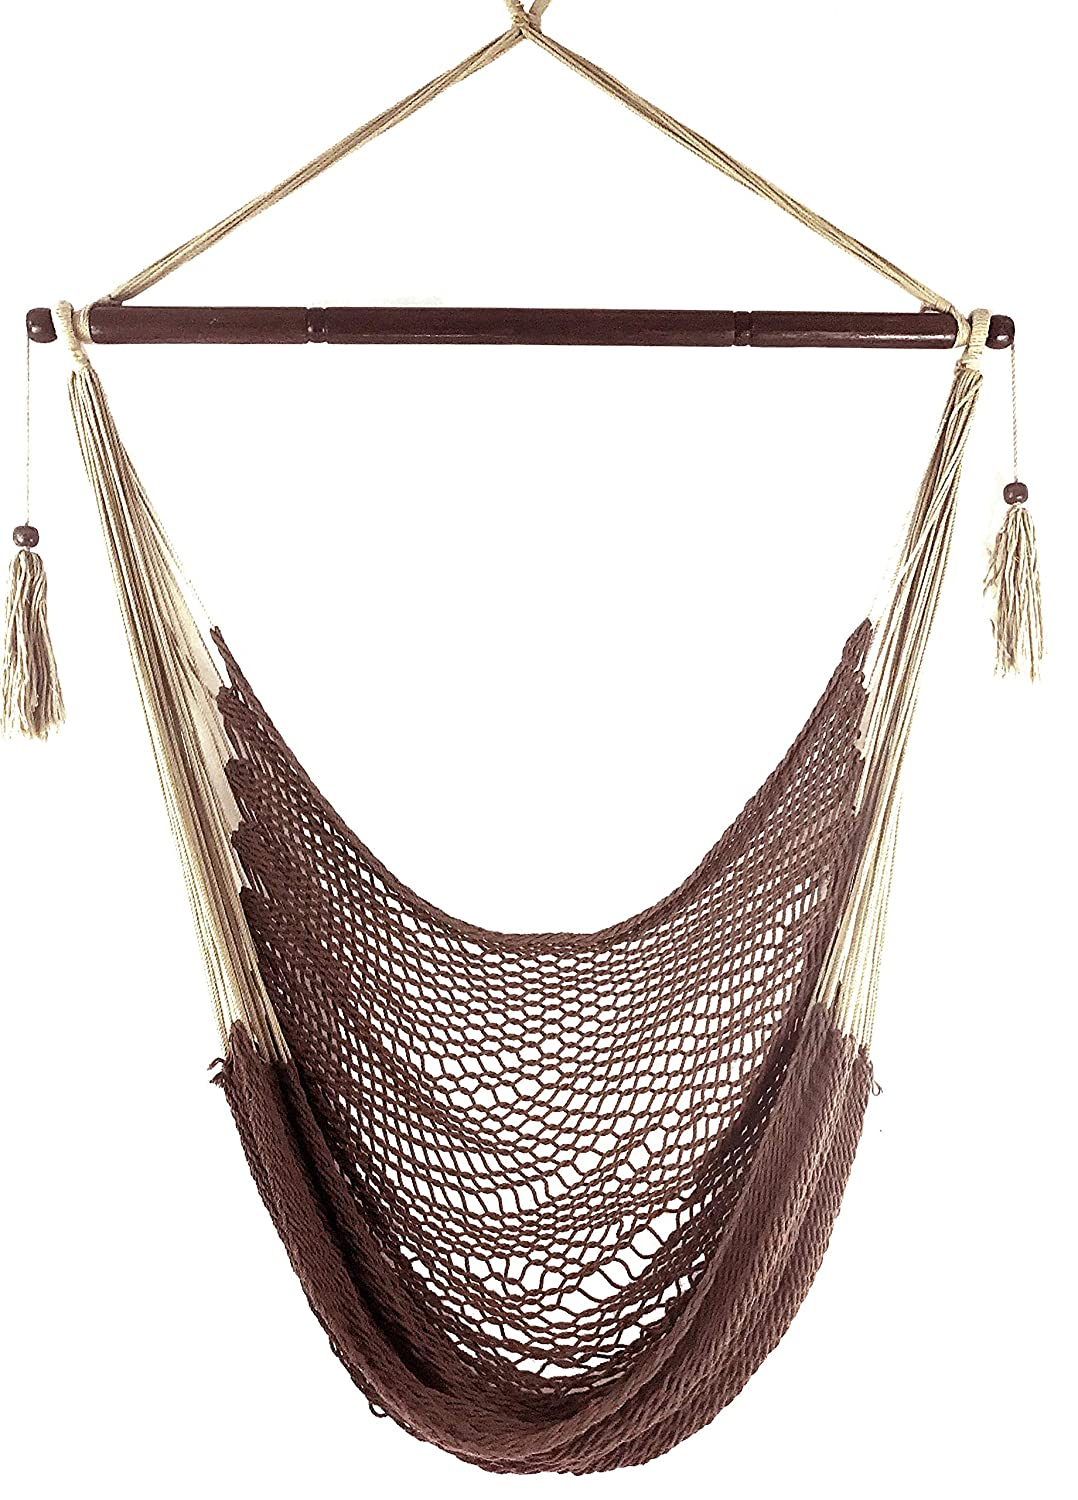 Krazy Outdoors Mayan Hammock Chair for bedroom